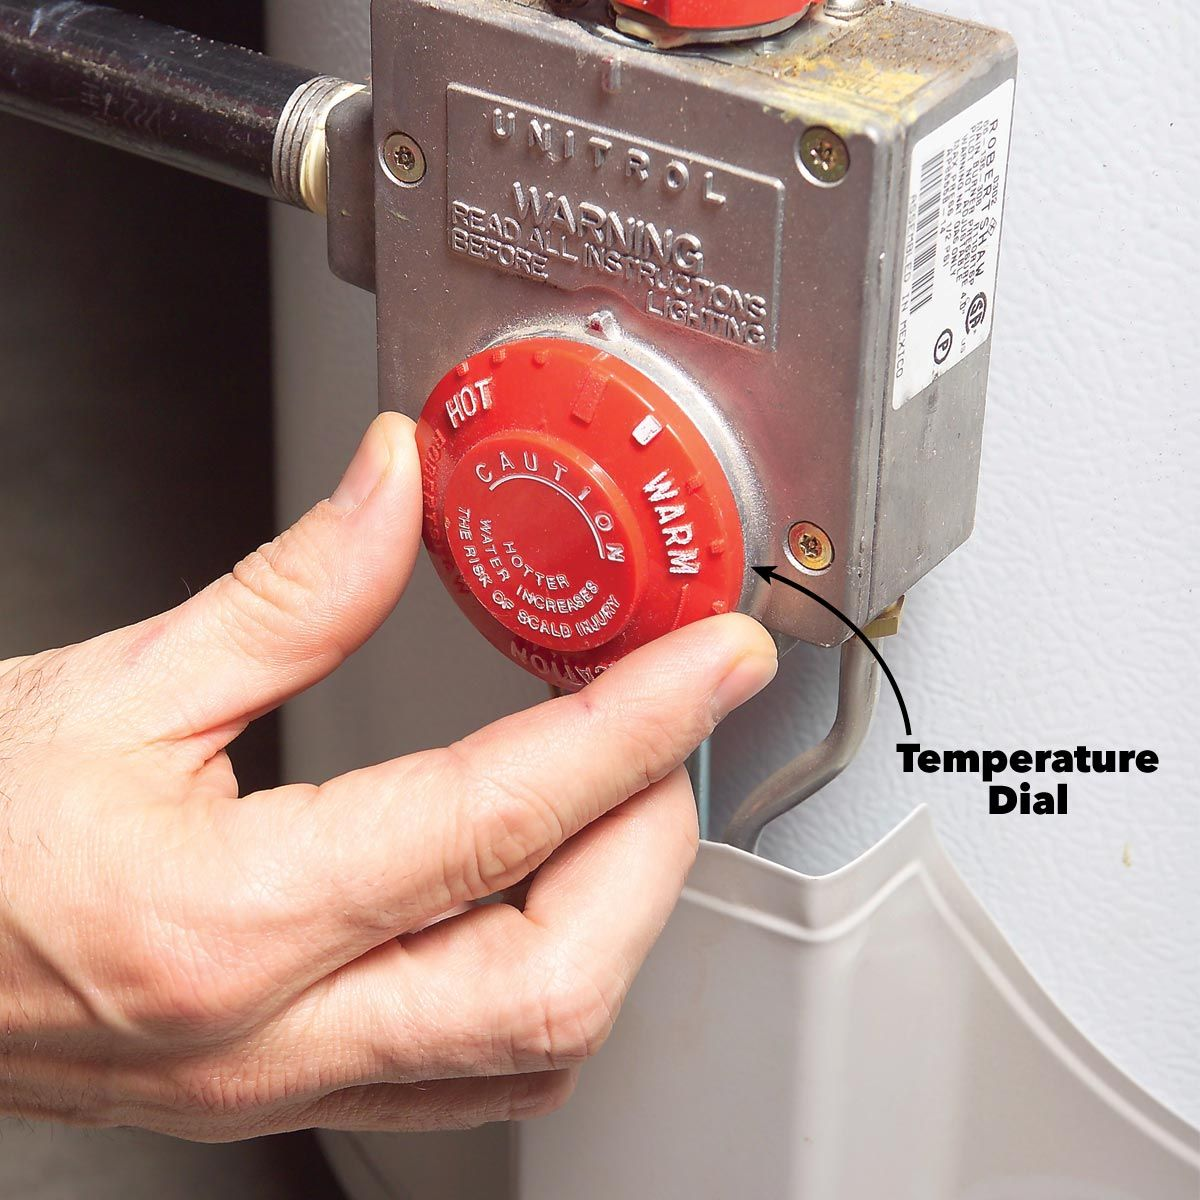 How To Adjust Water Heater Temperature Hot Water Heater Water Heater Water Heater Repair